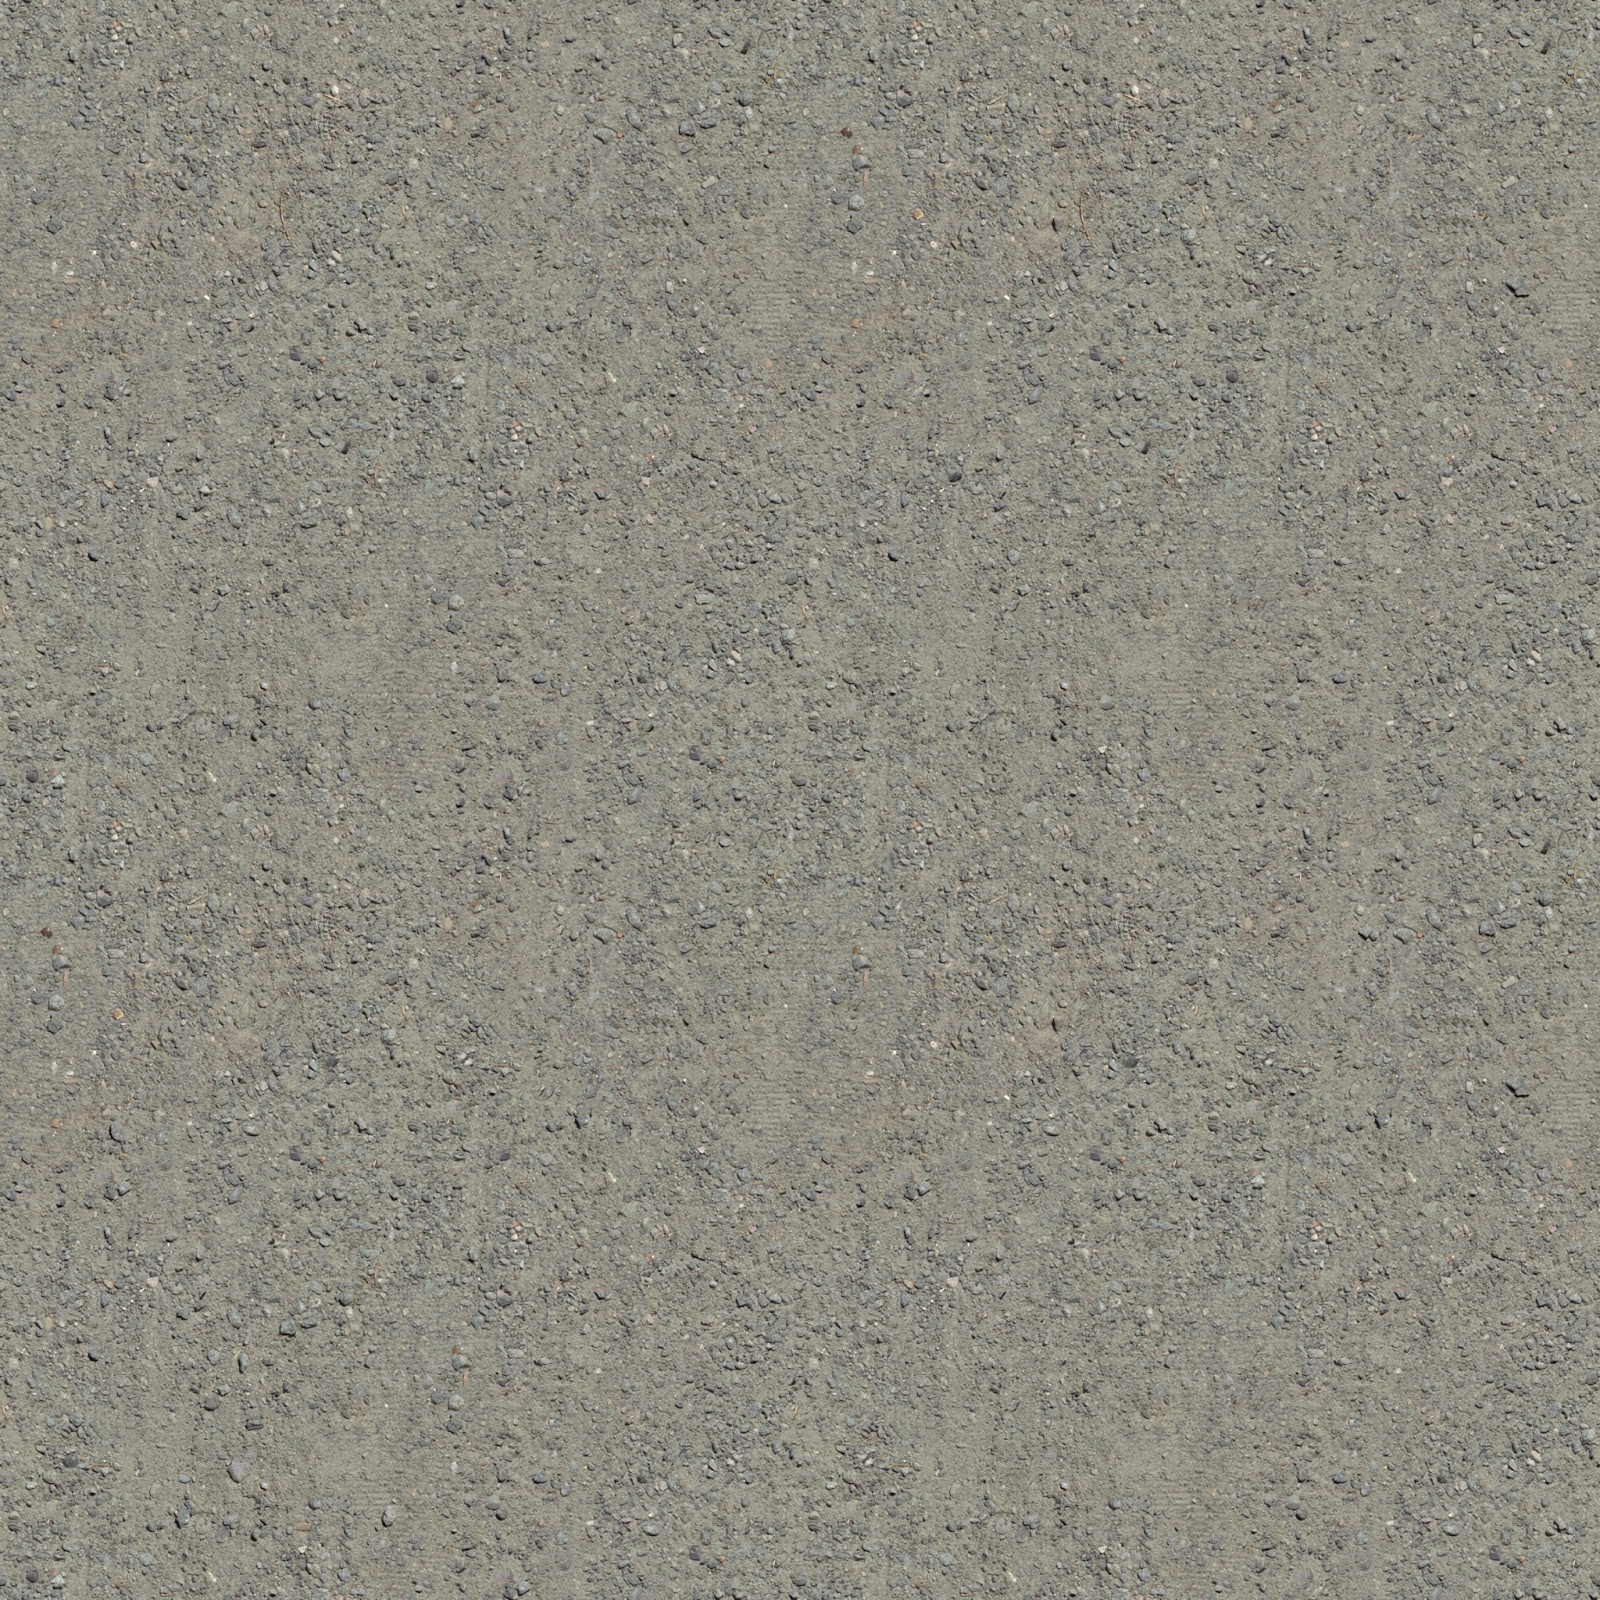 High Resolution Seamless Textures Dirt 1 Soil Dust Dirt